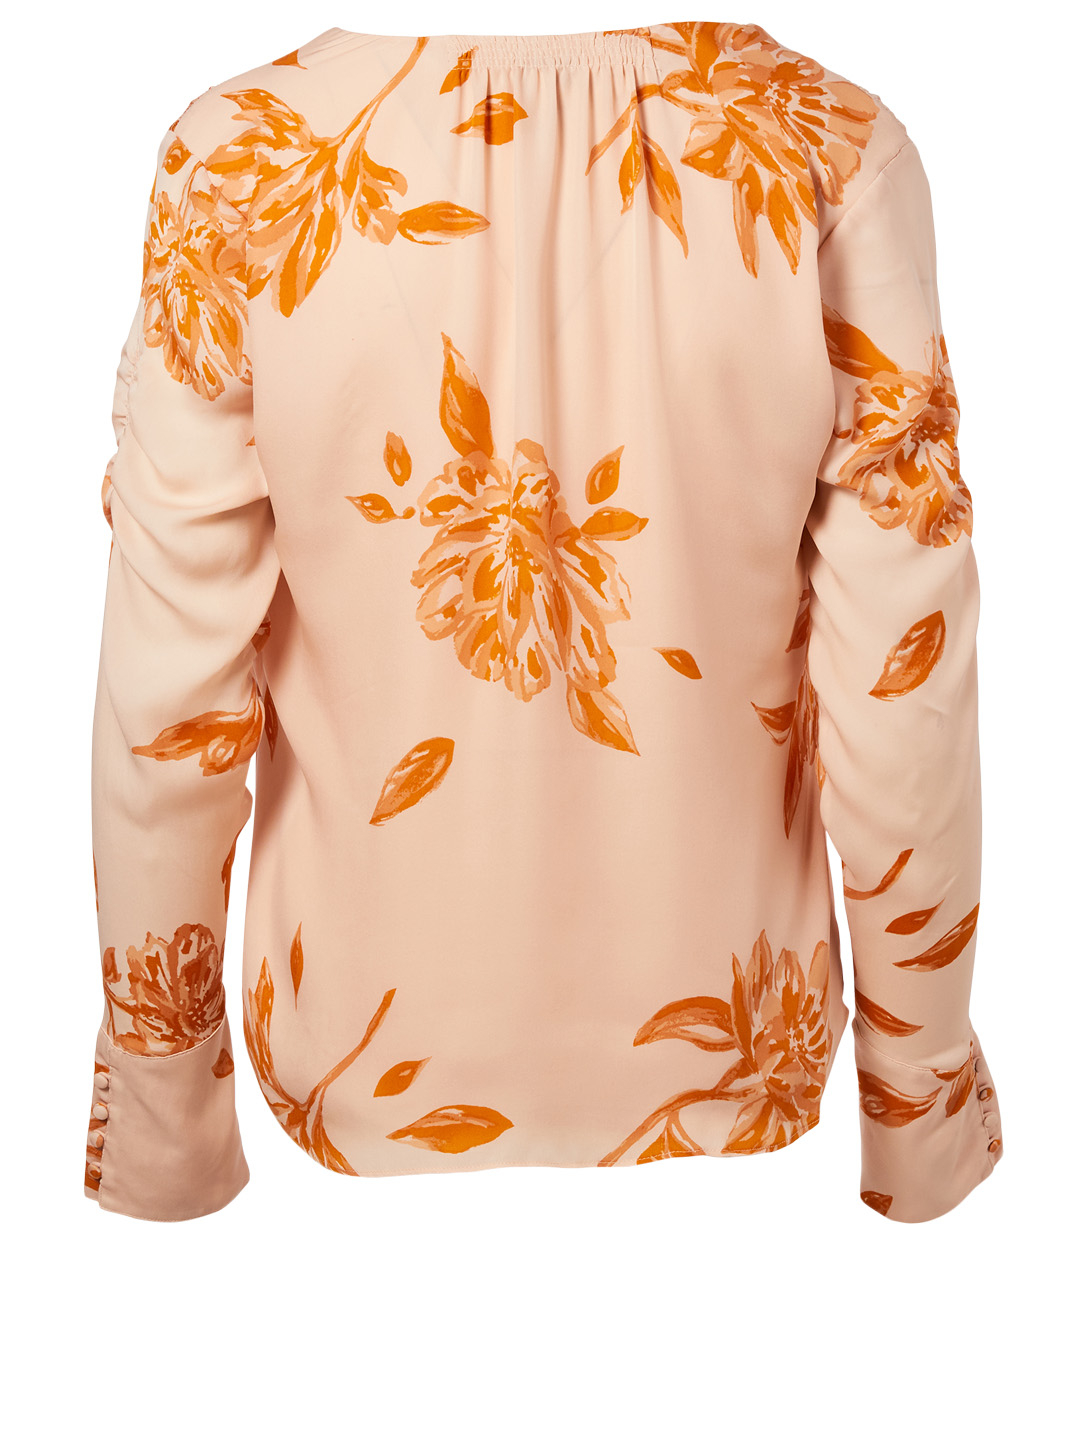 JOIE Galvin Silk Blouse In Floral Print Women's Pink